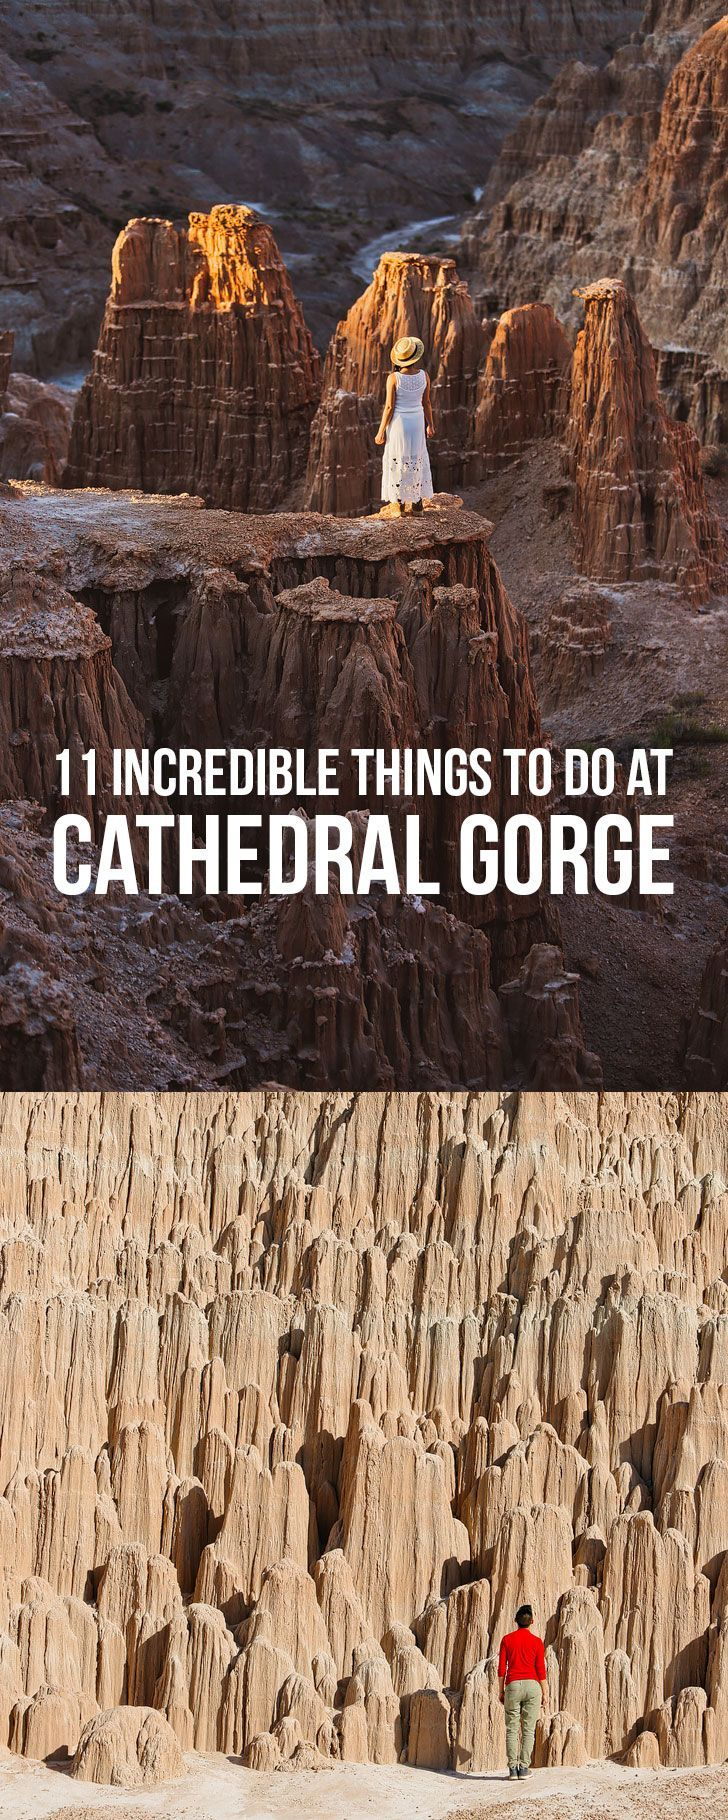 11 Incredible Things to Do at Cathedral Gorge State Park, Nevada // Local Adventurer